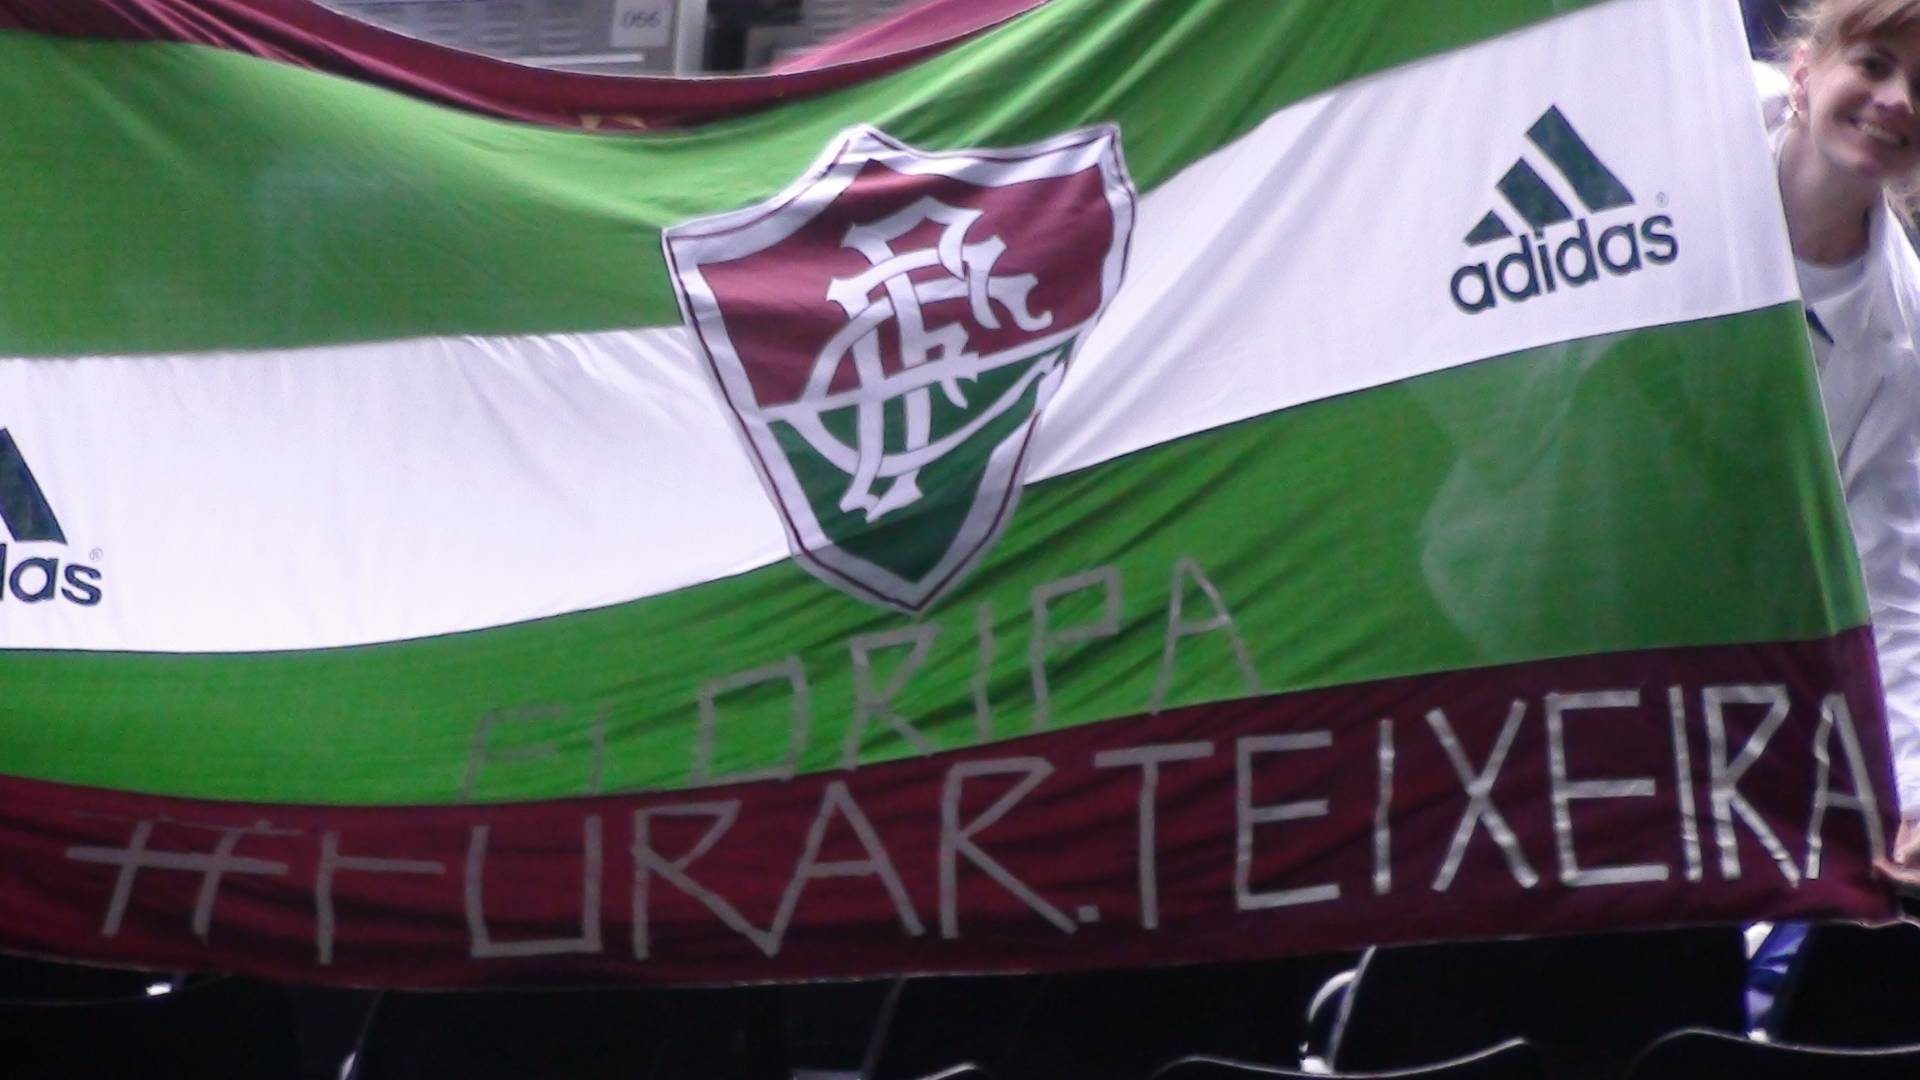 Torcedores do Fluminense estendem bandeira em protesto a Ricardo Teixeira